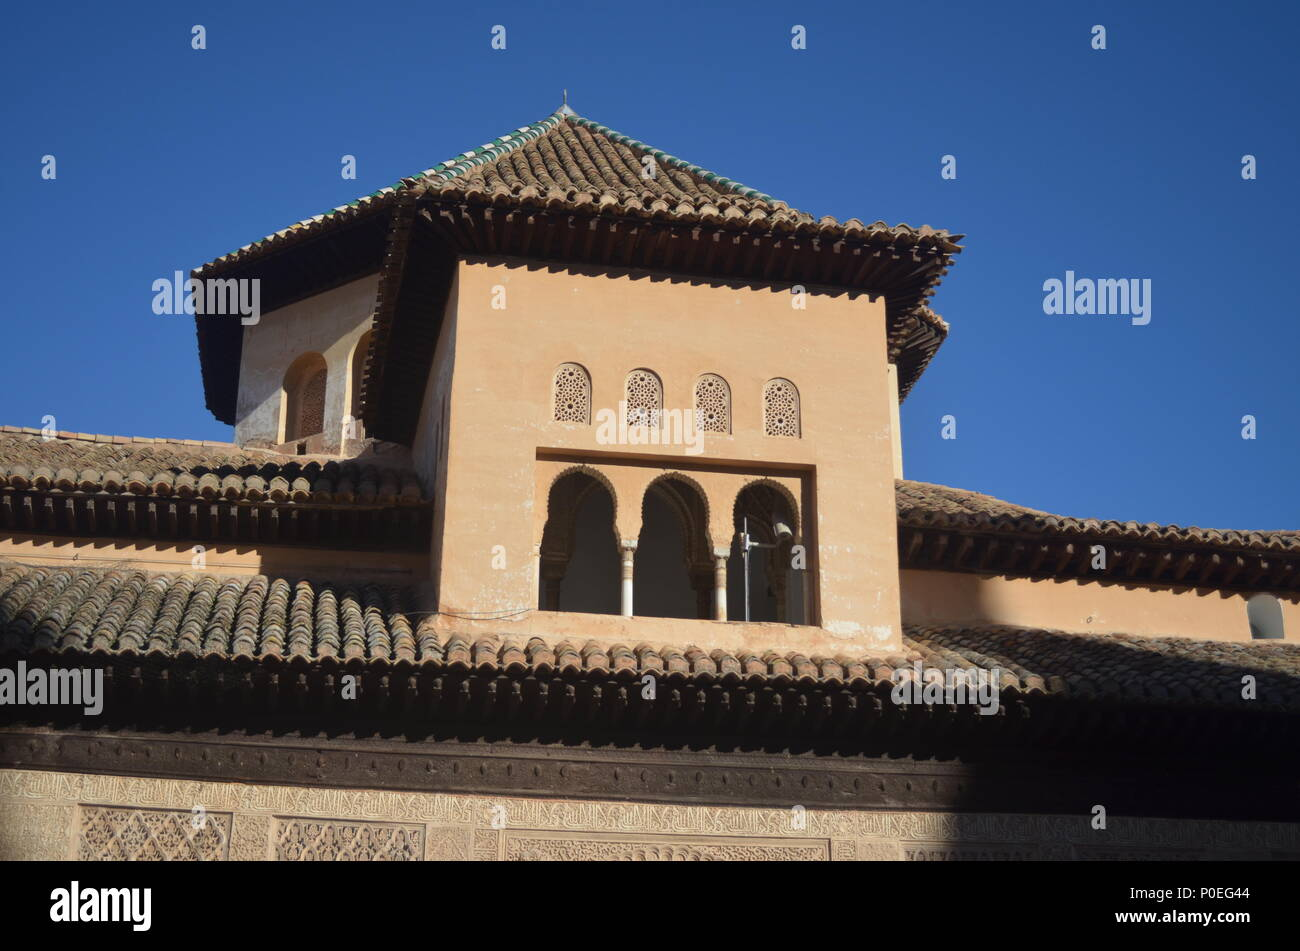 Arabic architecture 1 - Stock Image